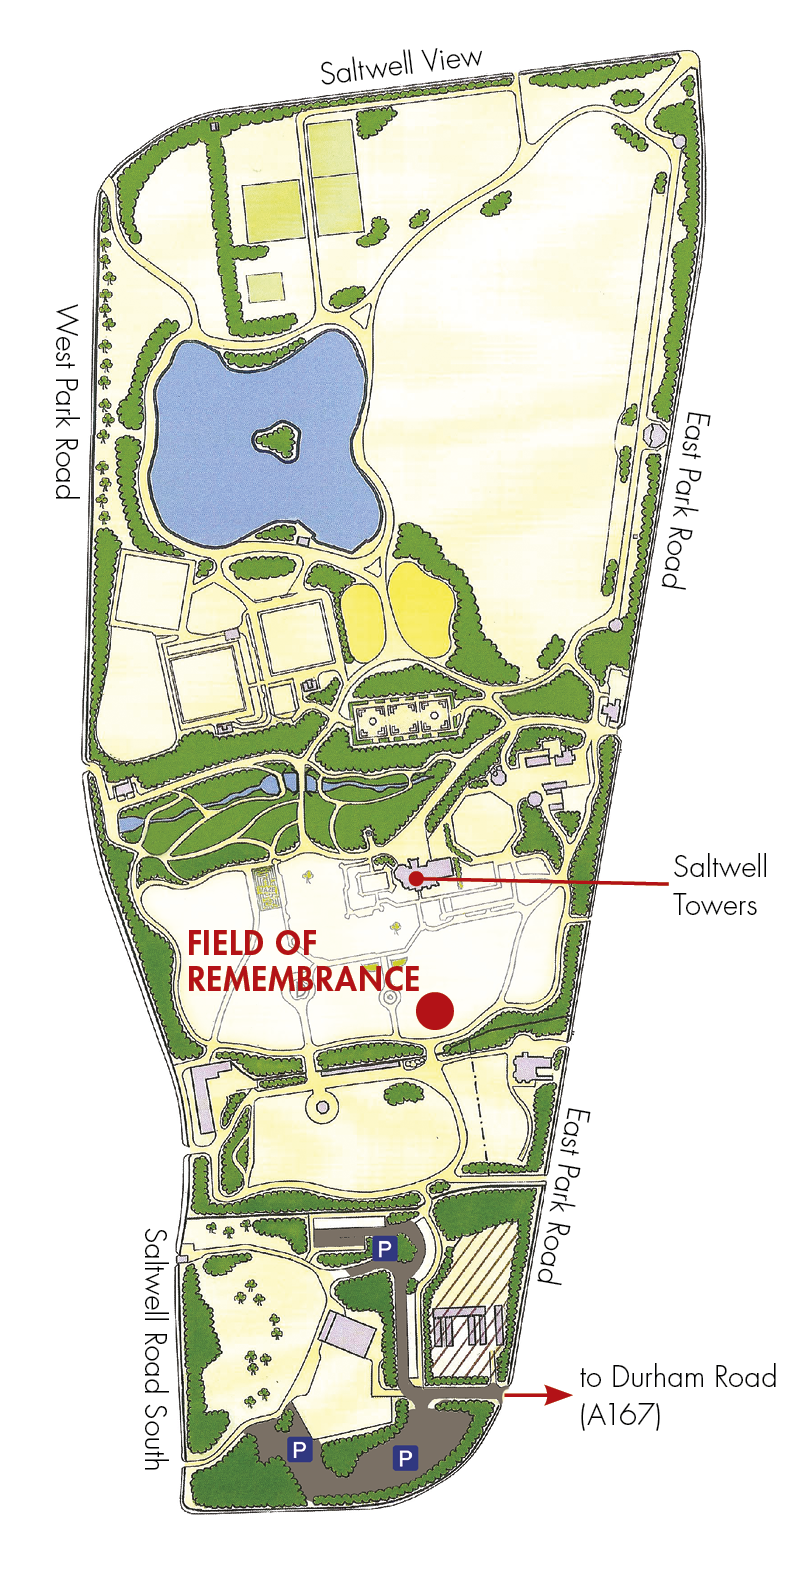 Gateshead Field of Remembrance map